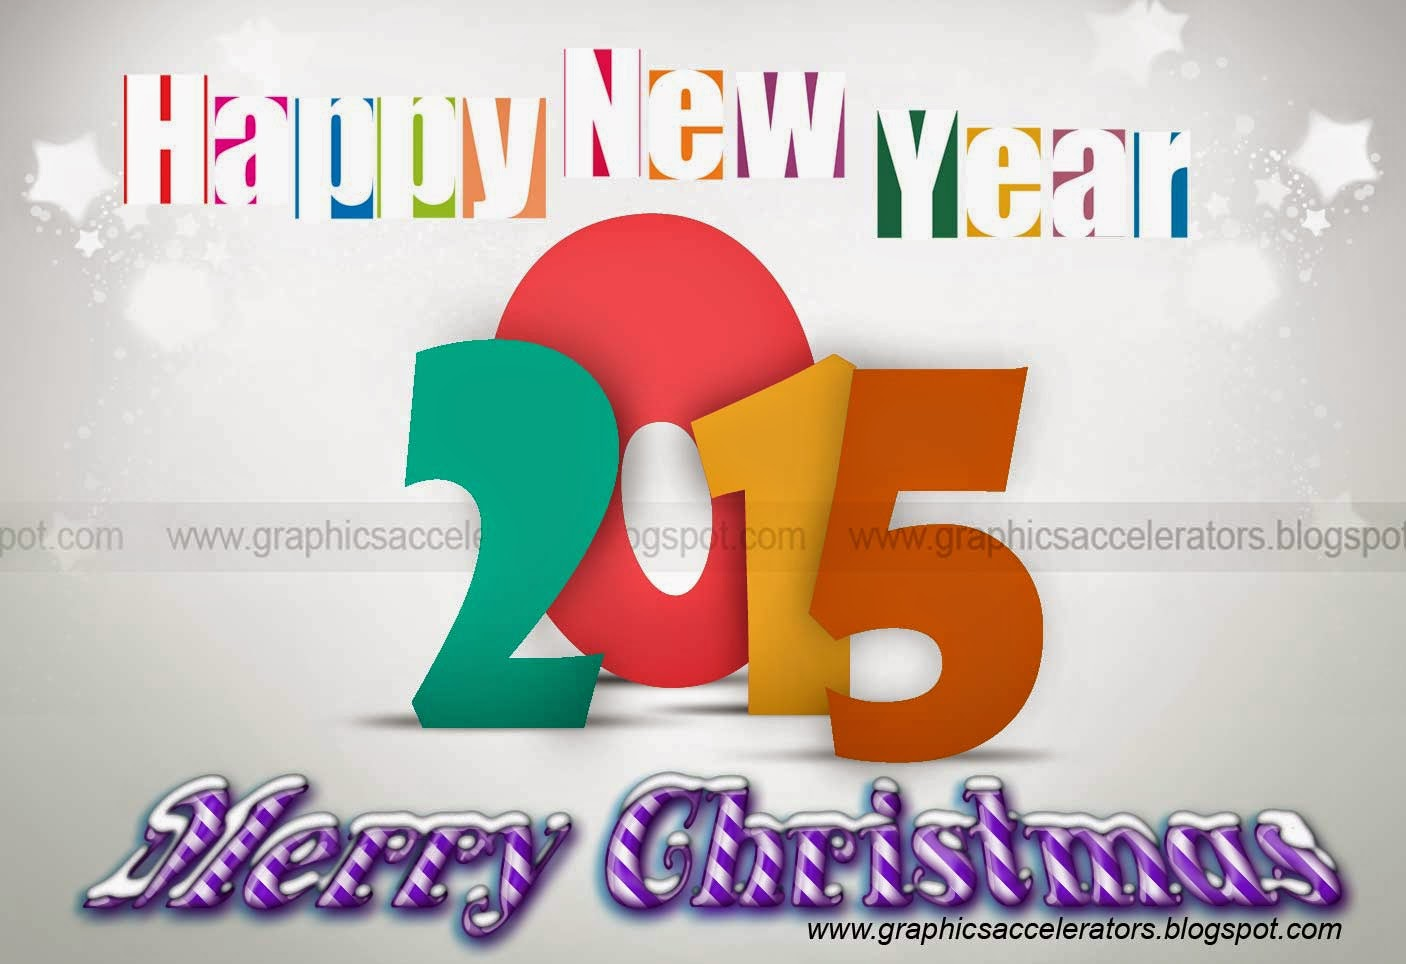 graphicsaccelerators merry christmas and happy new year 2015 images